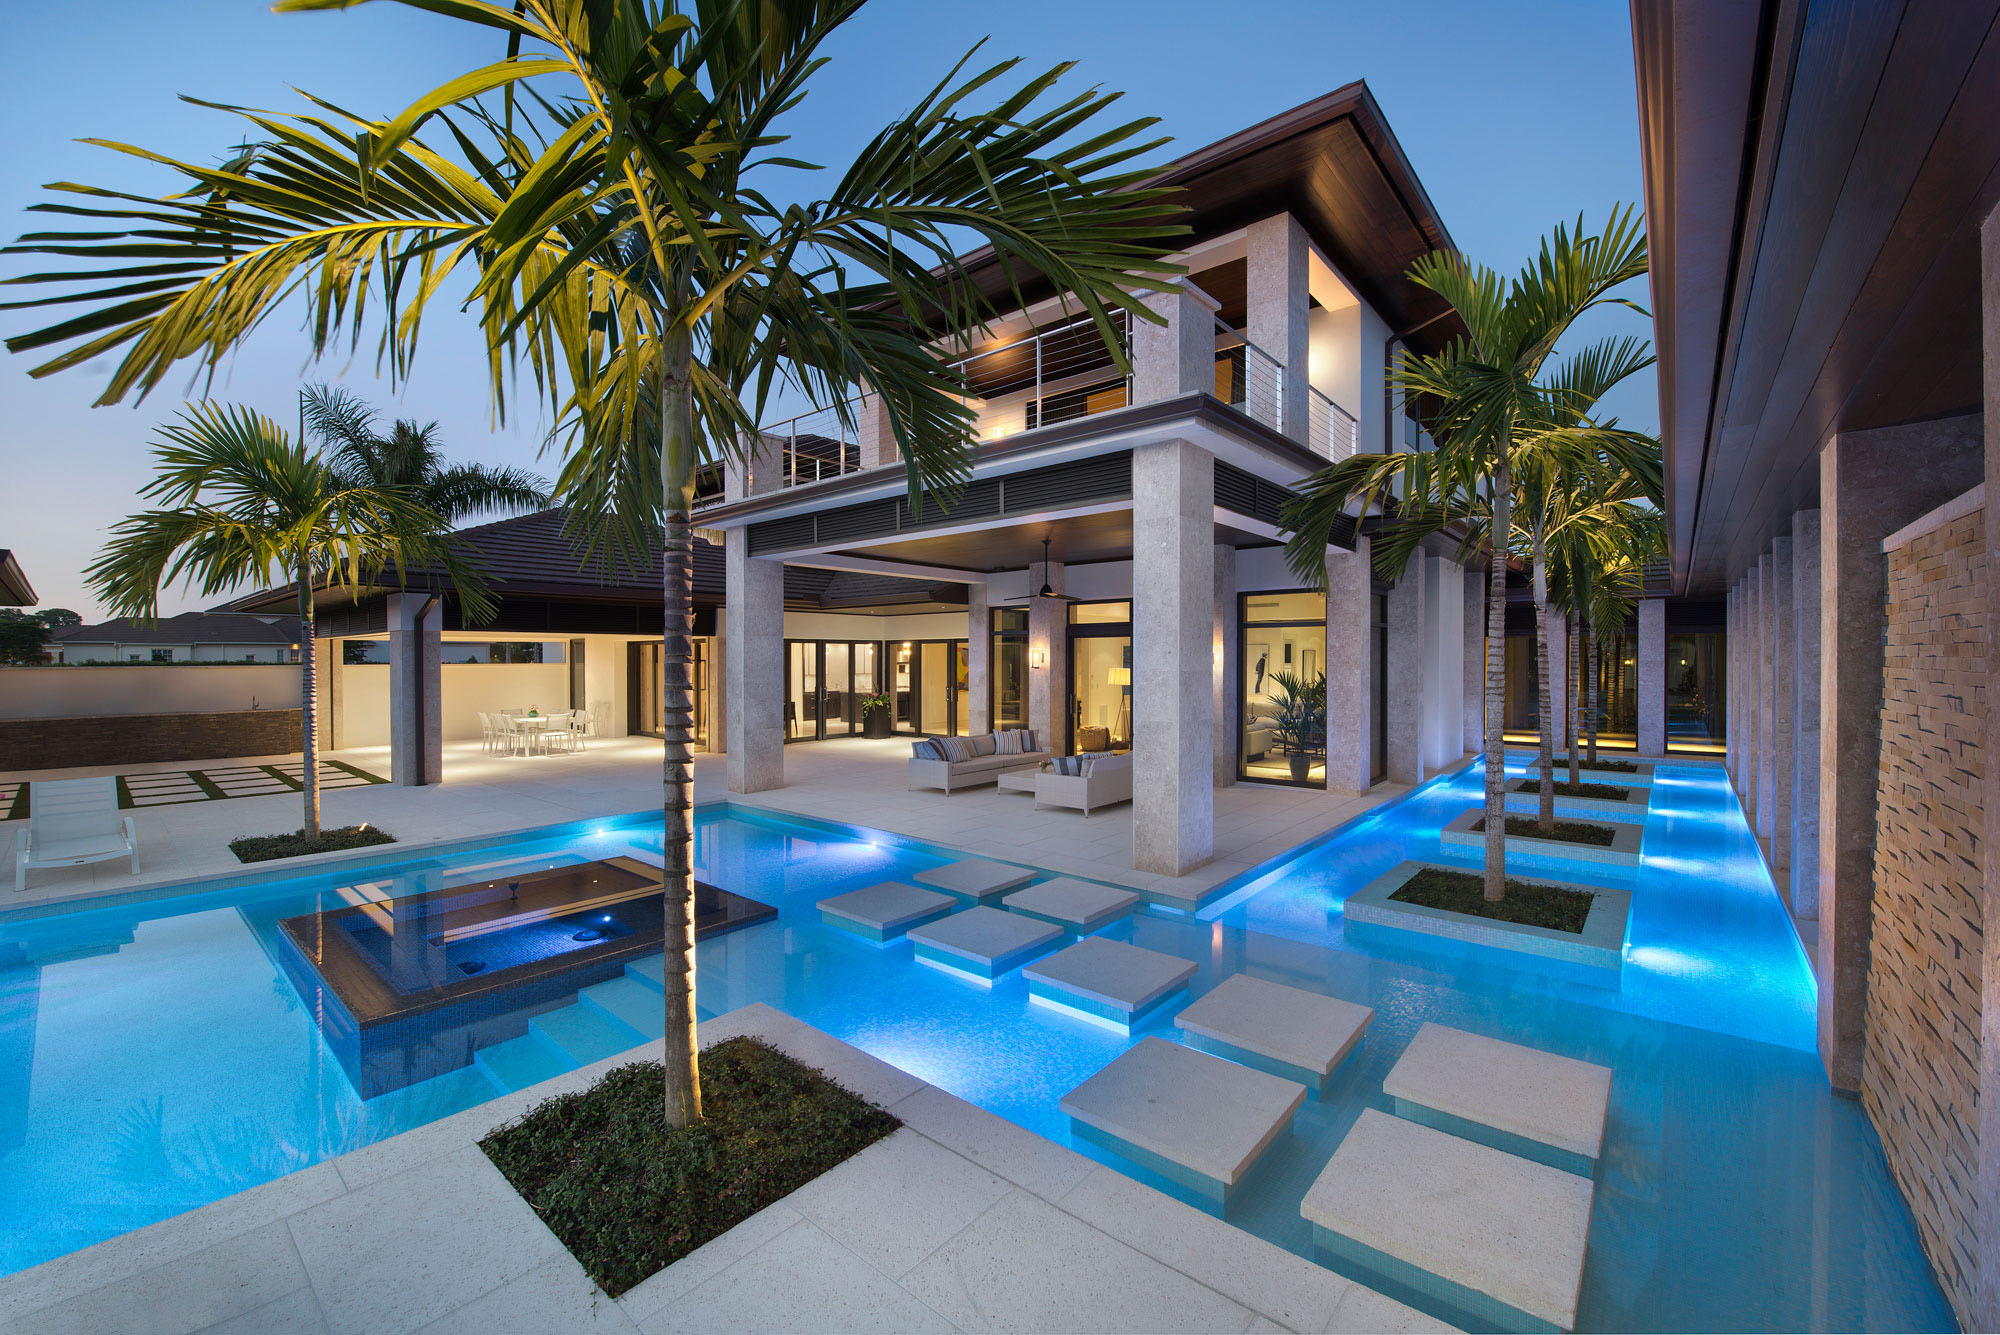 Custom Dream Home In Florida With Elegant Swimming Pool ...